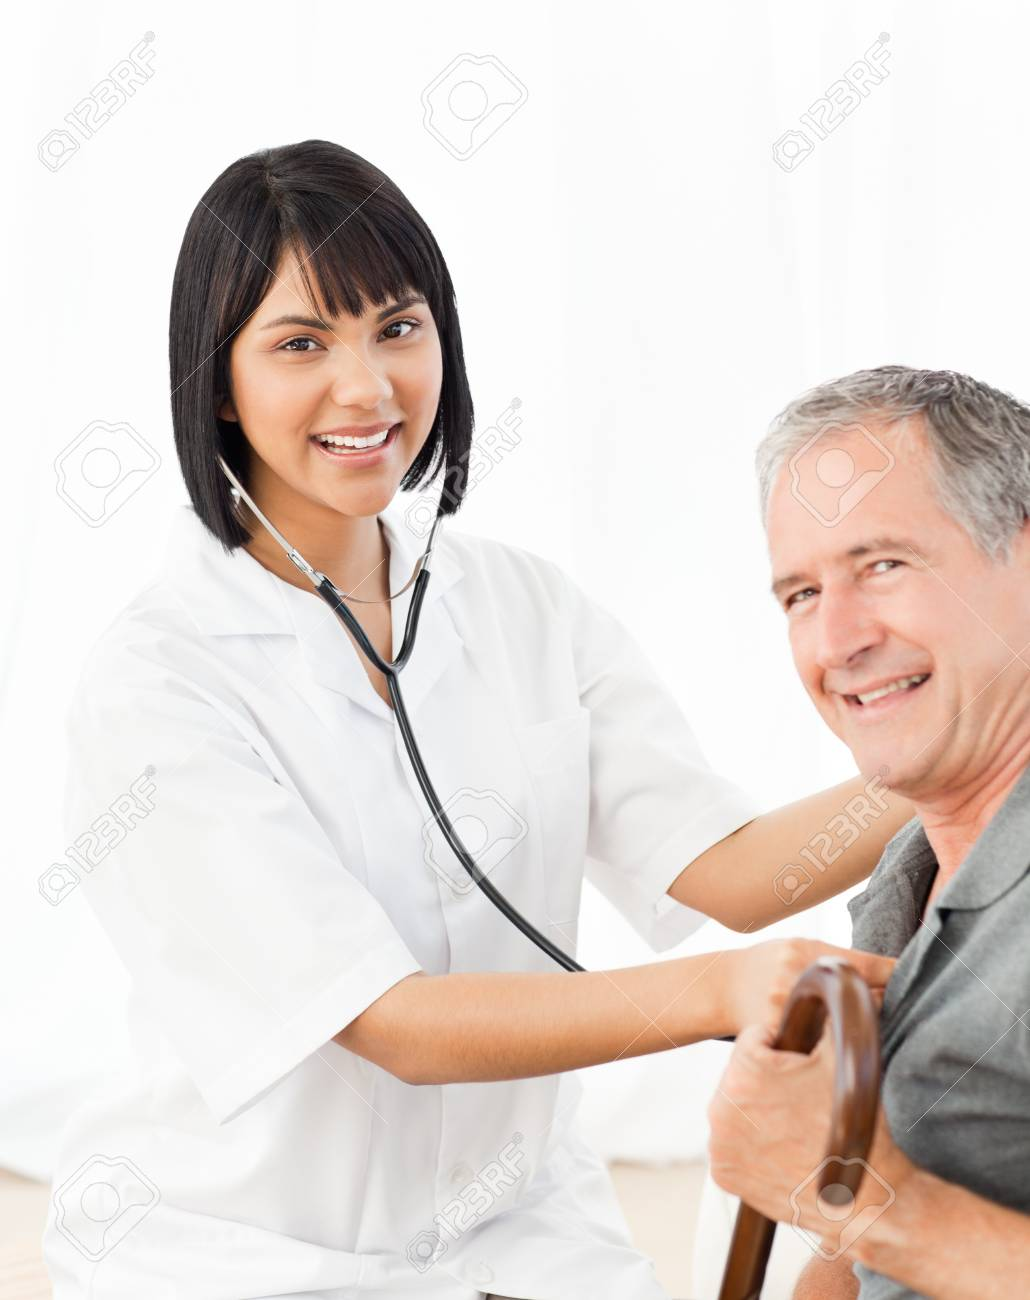 Nurse with her patient looking at the camera Stock Photo - 10196846